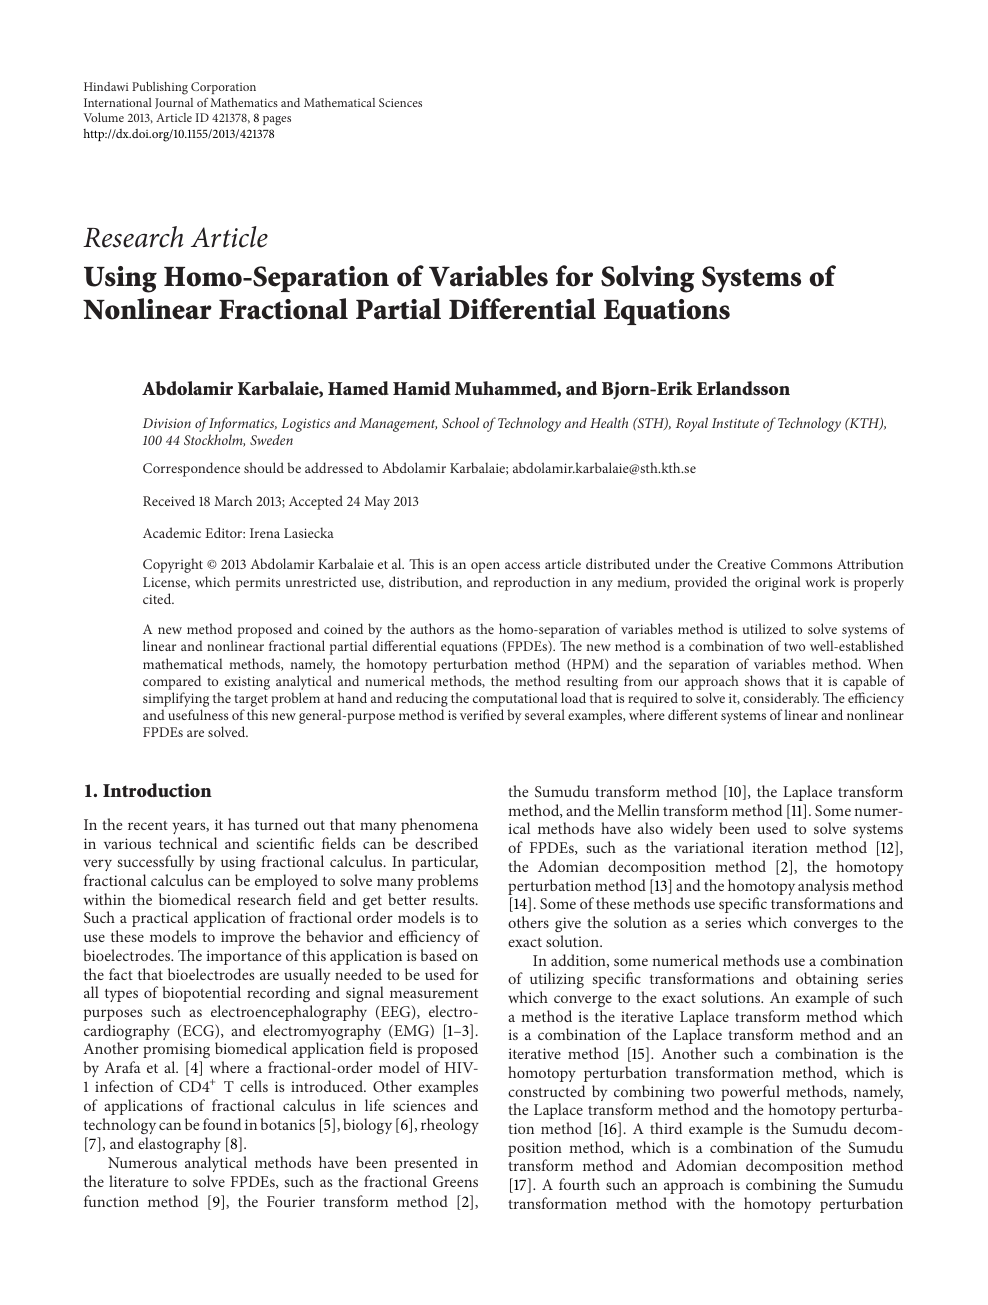 Using Homo-Separation of Variables for Solving Systems of Nonlinear